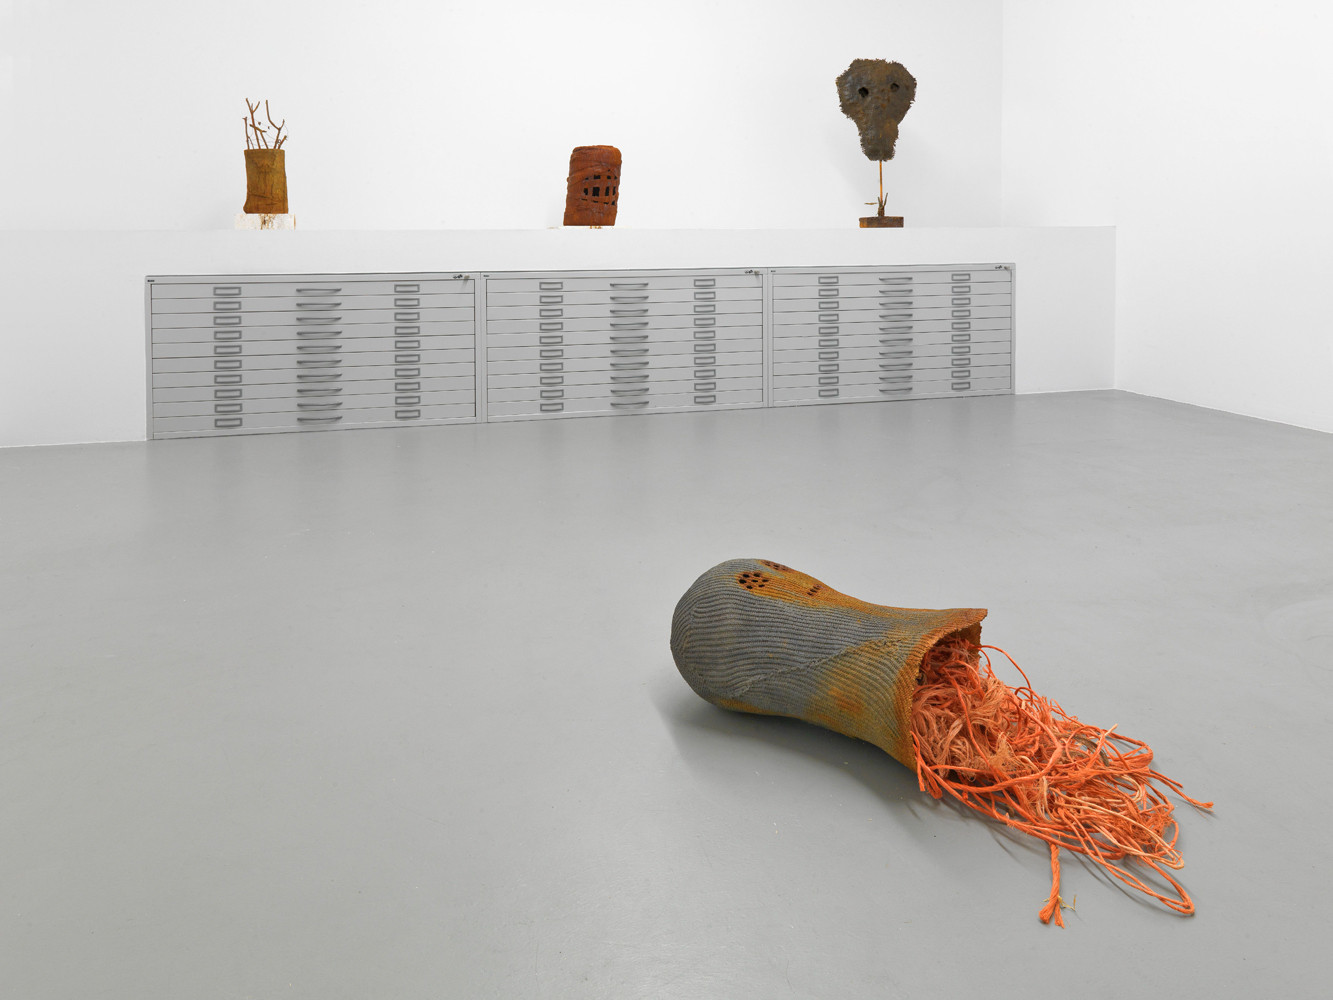 Des Hughes, 'Rust never sleeps', Installation view, Buchmann Box, 2013